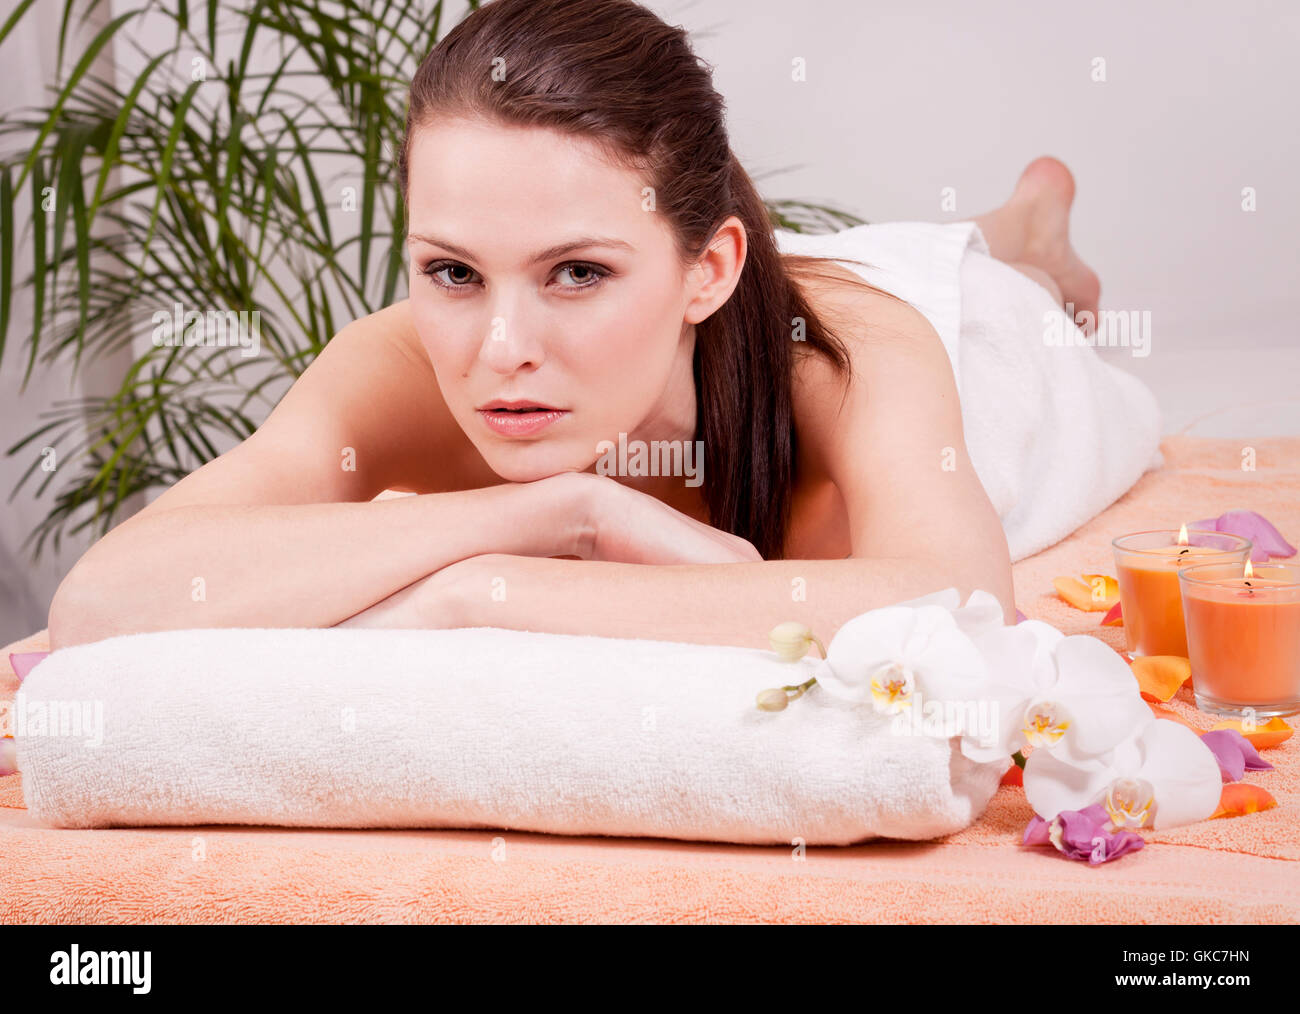 therapist massaging a young attractive woman wellness spa health relaxation - Stock Image